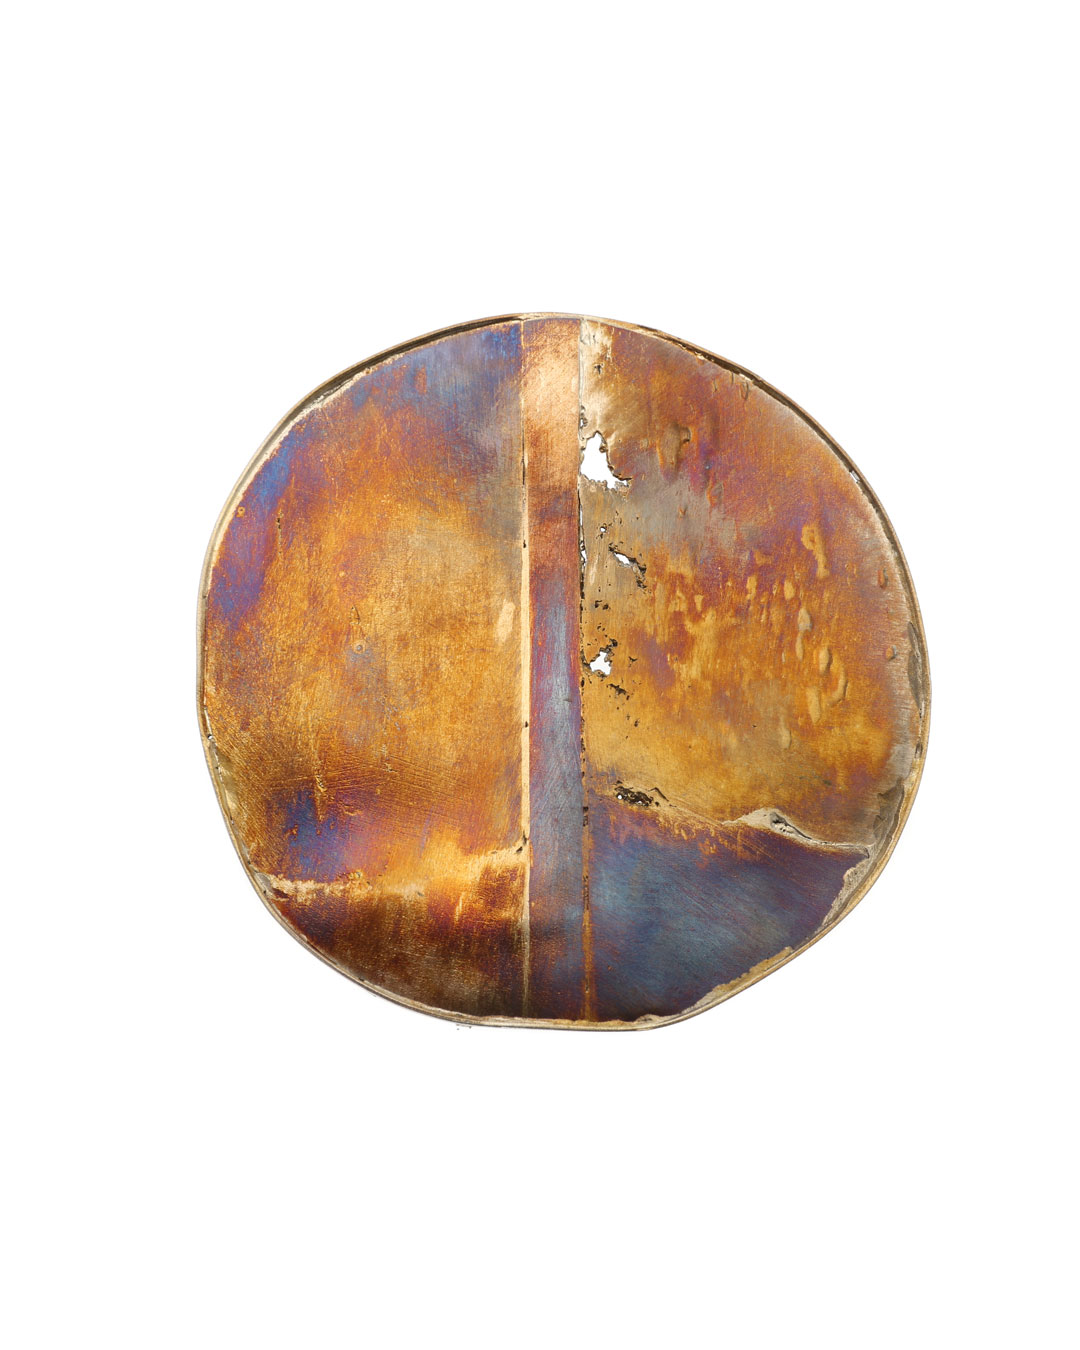 Rudolf Kocéa, Alles (Everything), 2018, brooch; silver, copper, ø 90 mm, €2150